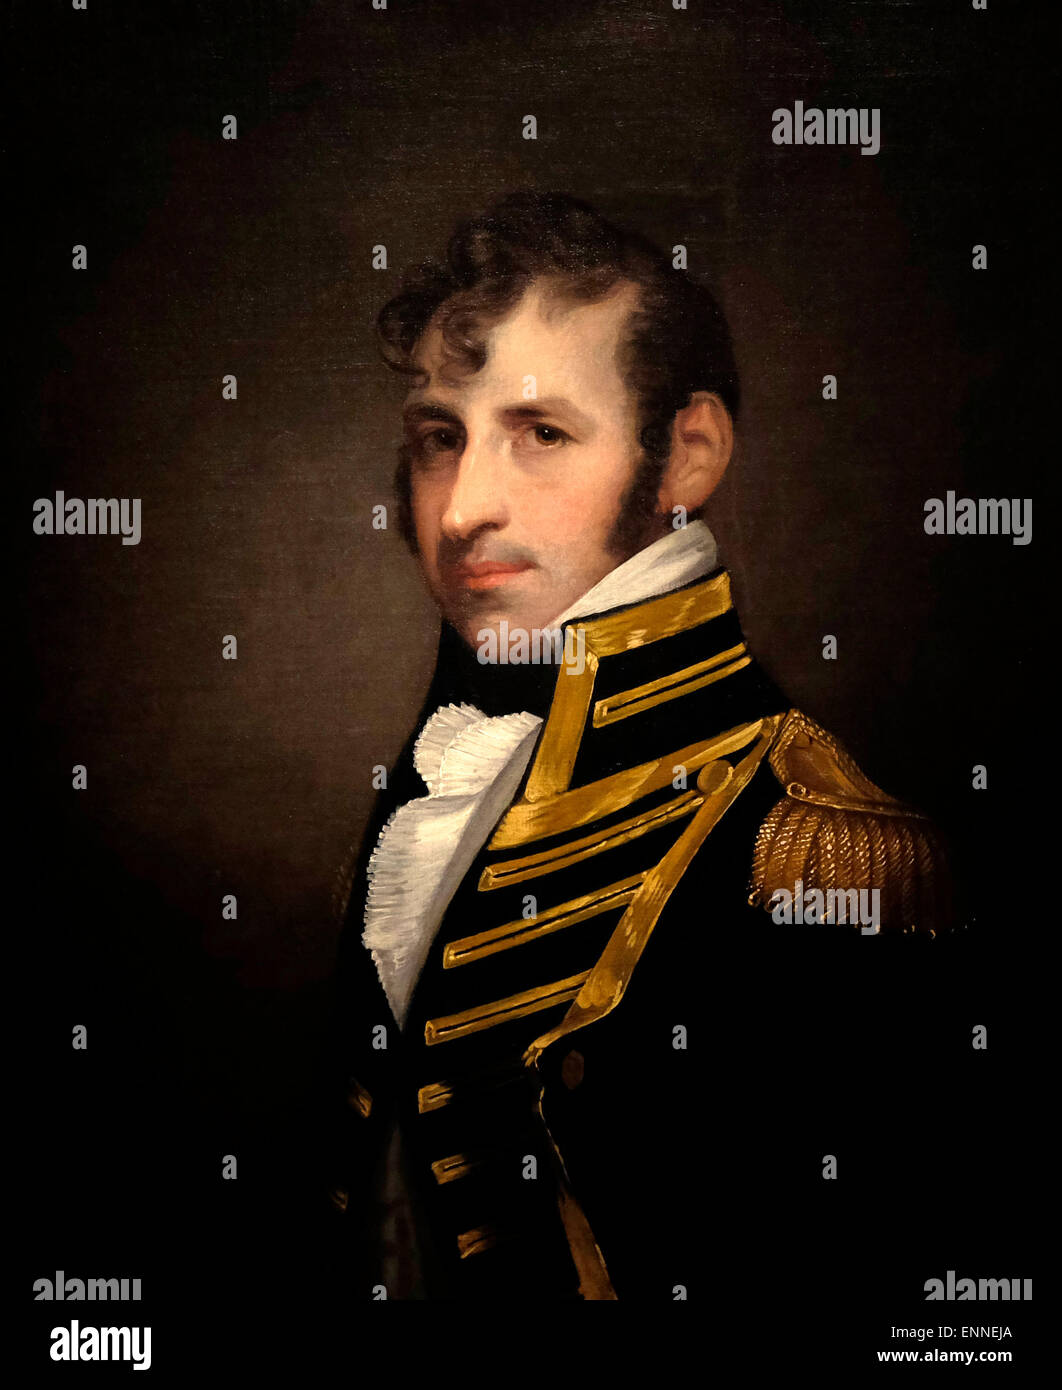 Stephen Decatur, Jr. (January 5, 1779 – March 22, 1820) was a United States naval officer and Commodore notable - Stock Image